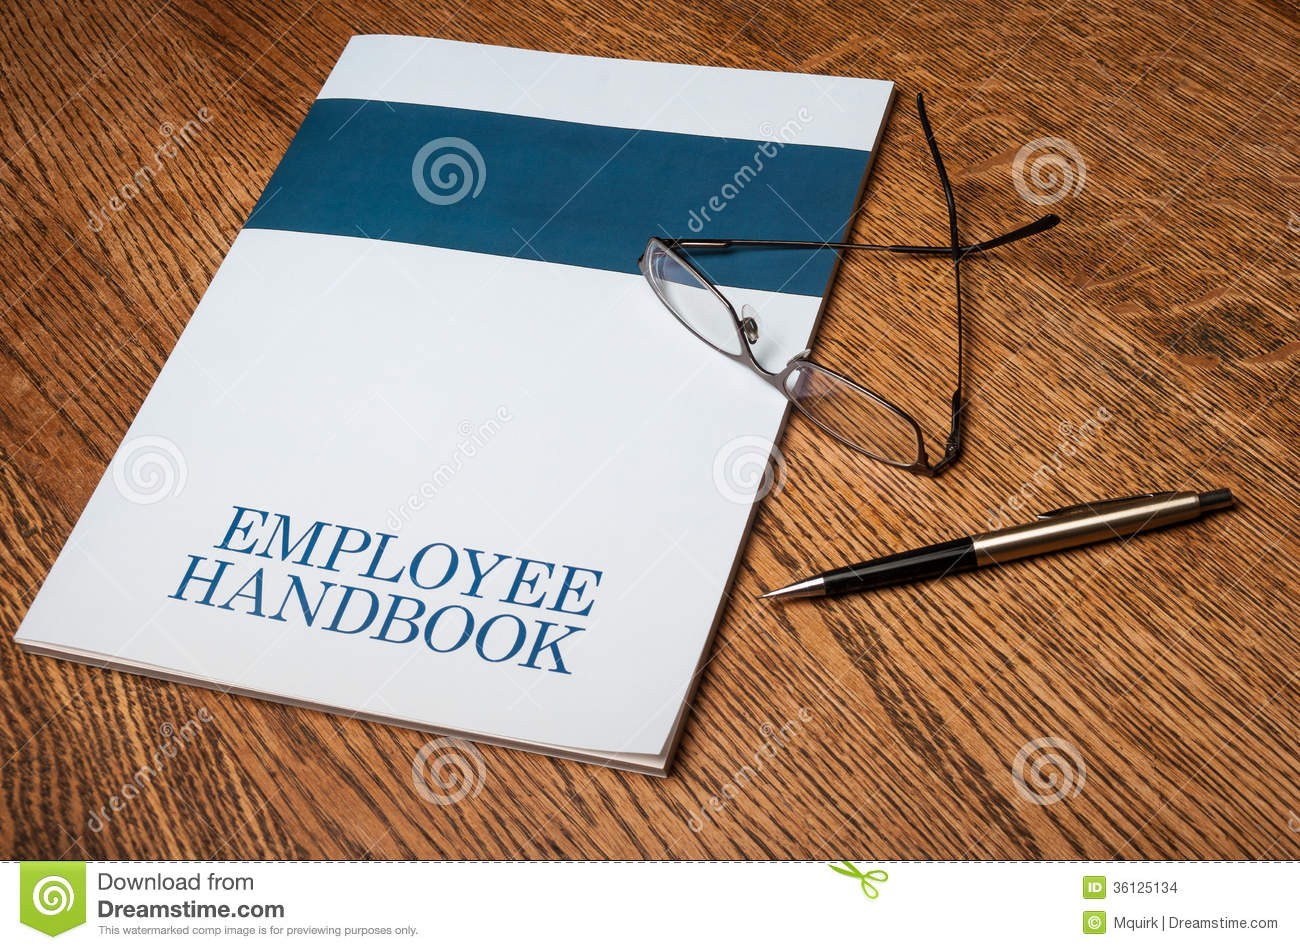 Employee handbook stock images image 36125134 for Employee handbook cover design template